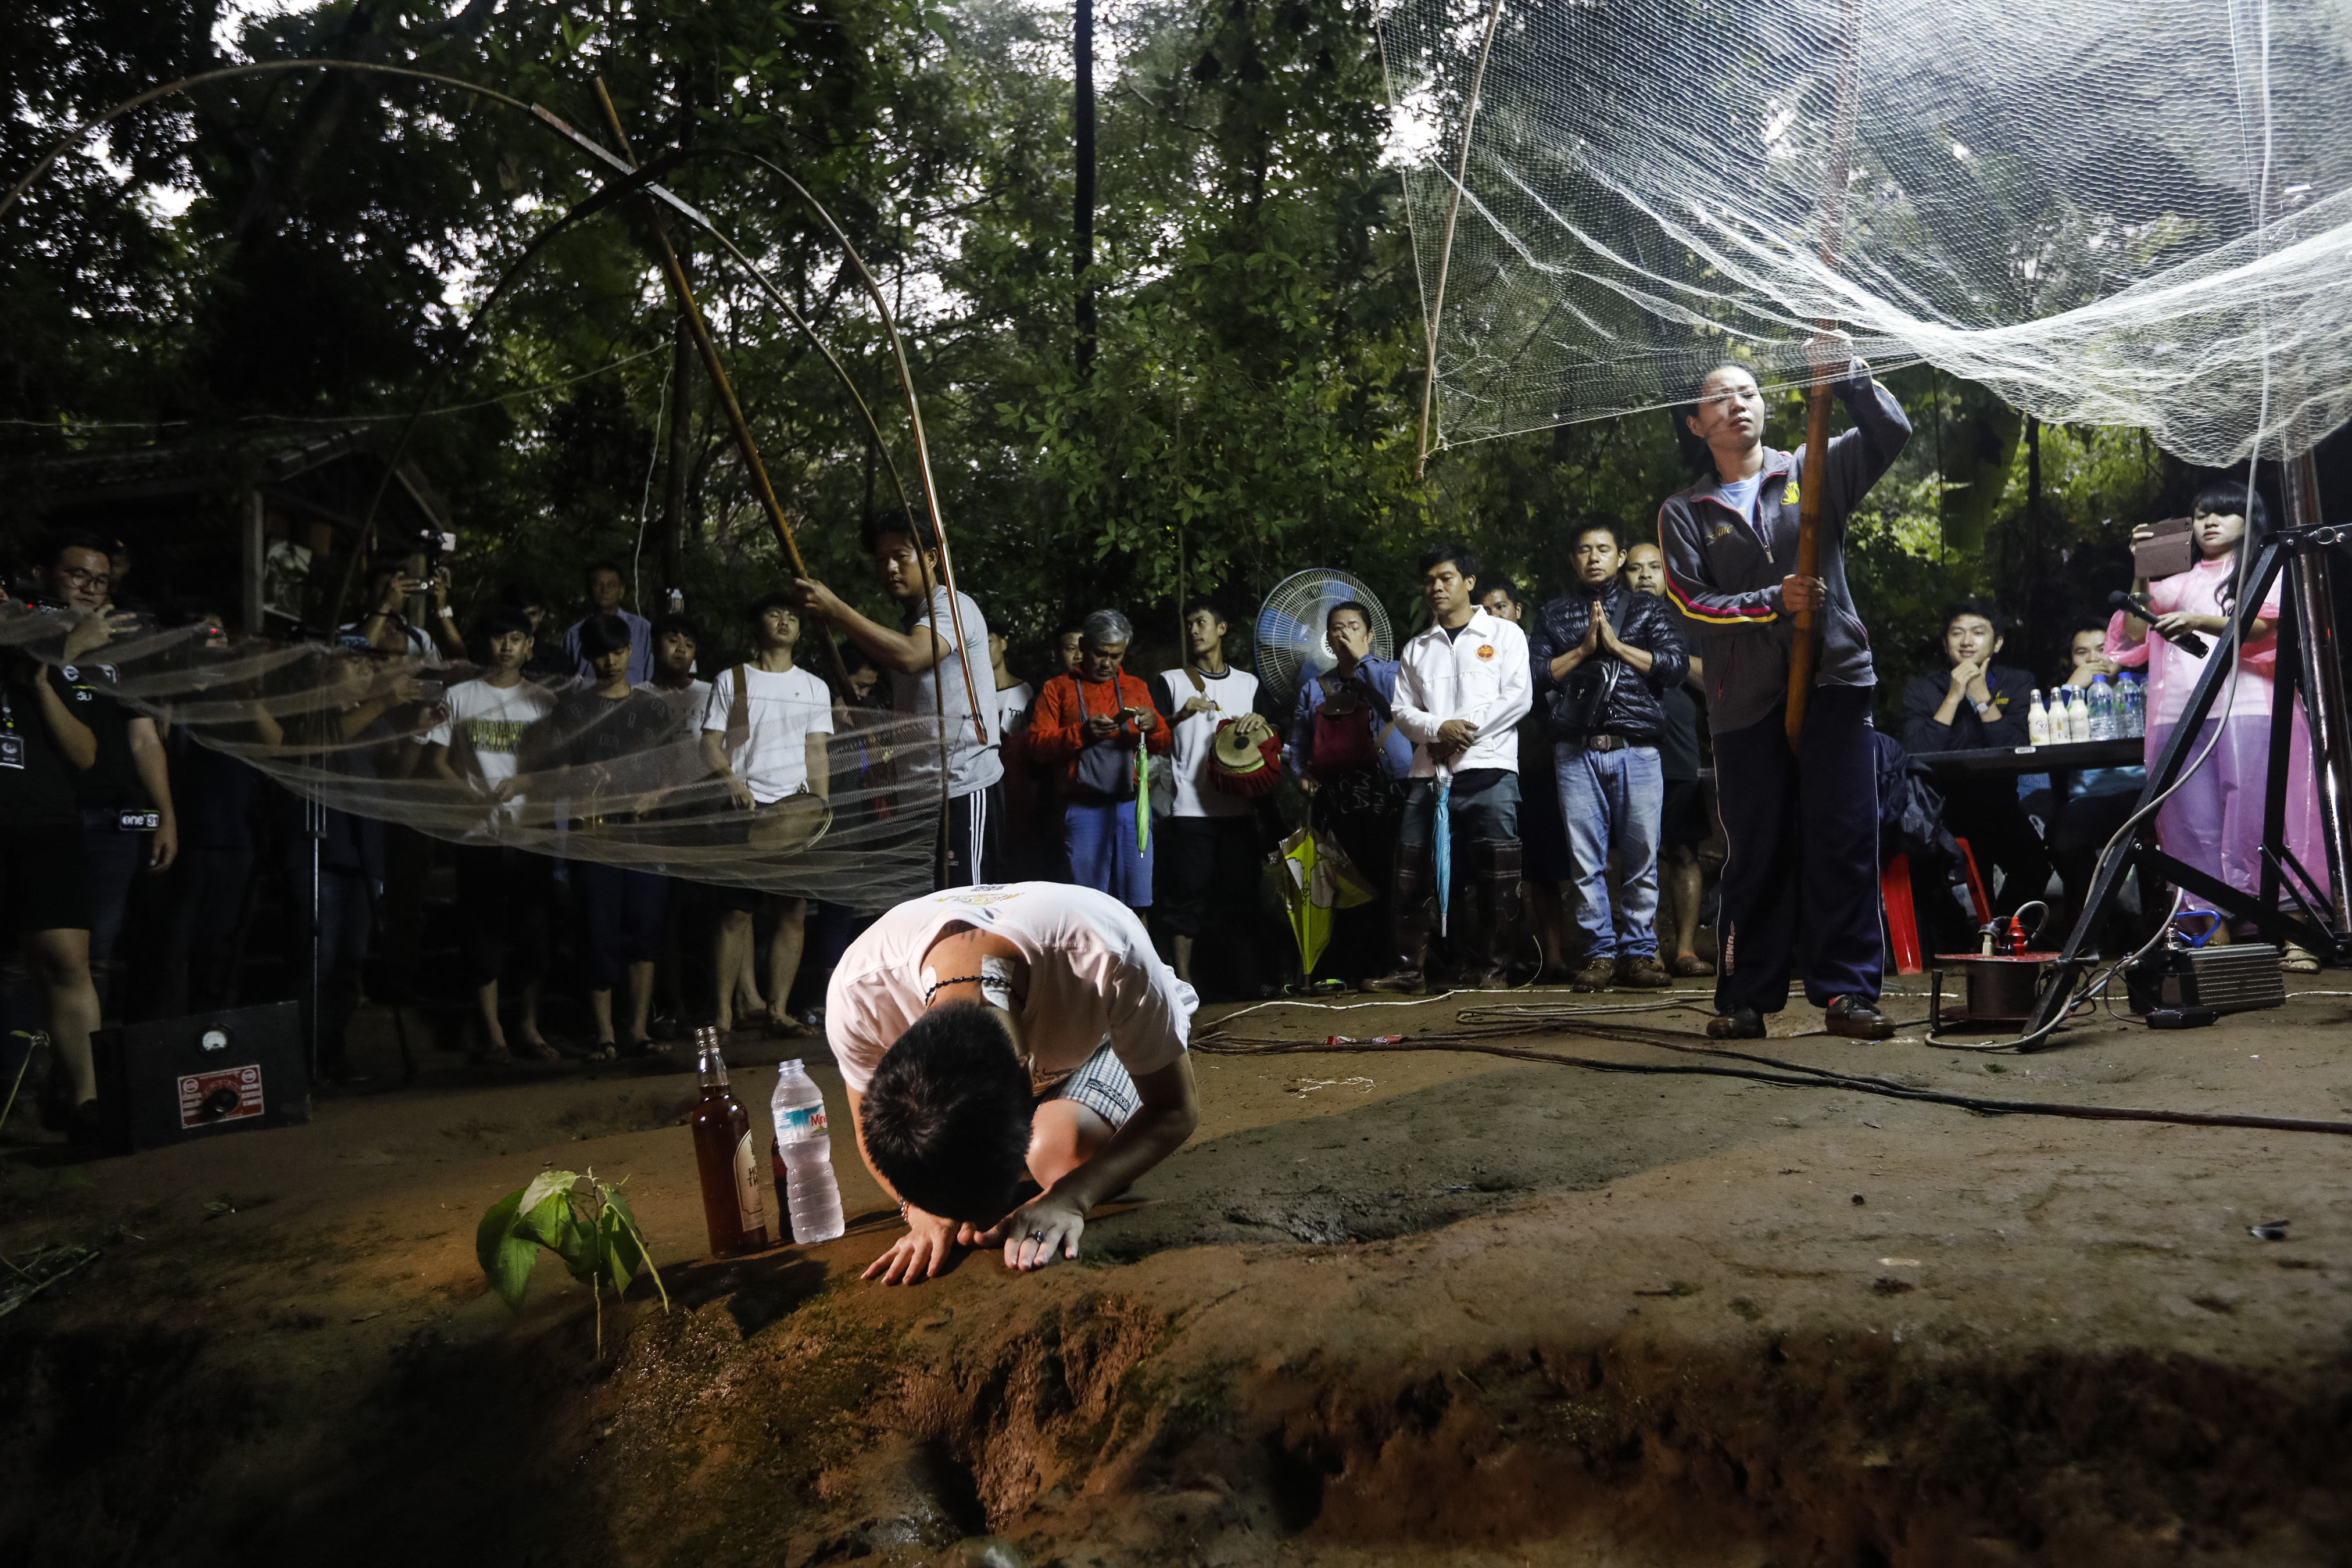 Family members pray at the entrance of Tham Luang cave while rescue personnel conduct operations to find the missing members of the children's football team and their coach at the cave in Khun Nam Nang Non Forest Park in Chiang Rai province on June 26, 2018.